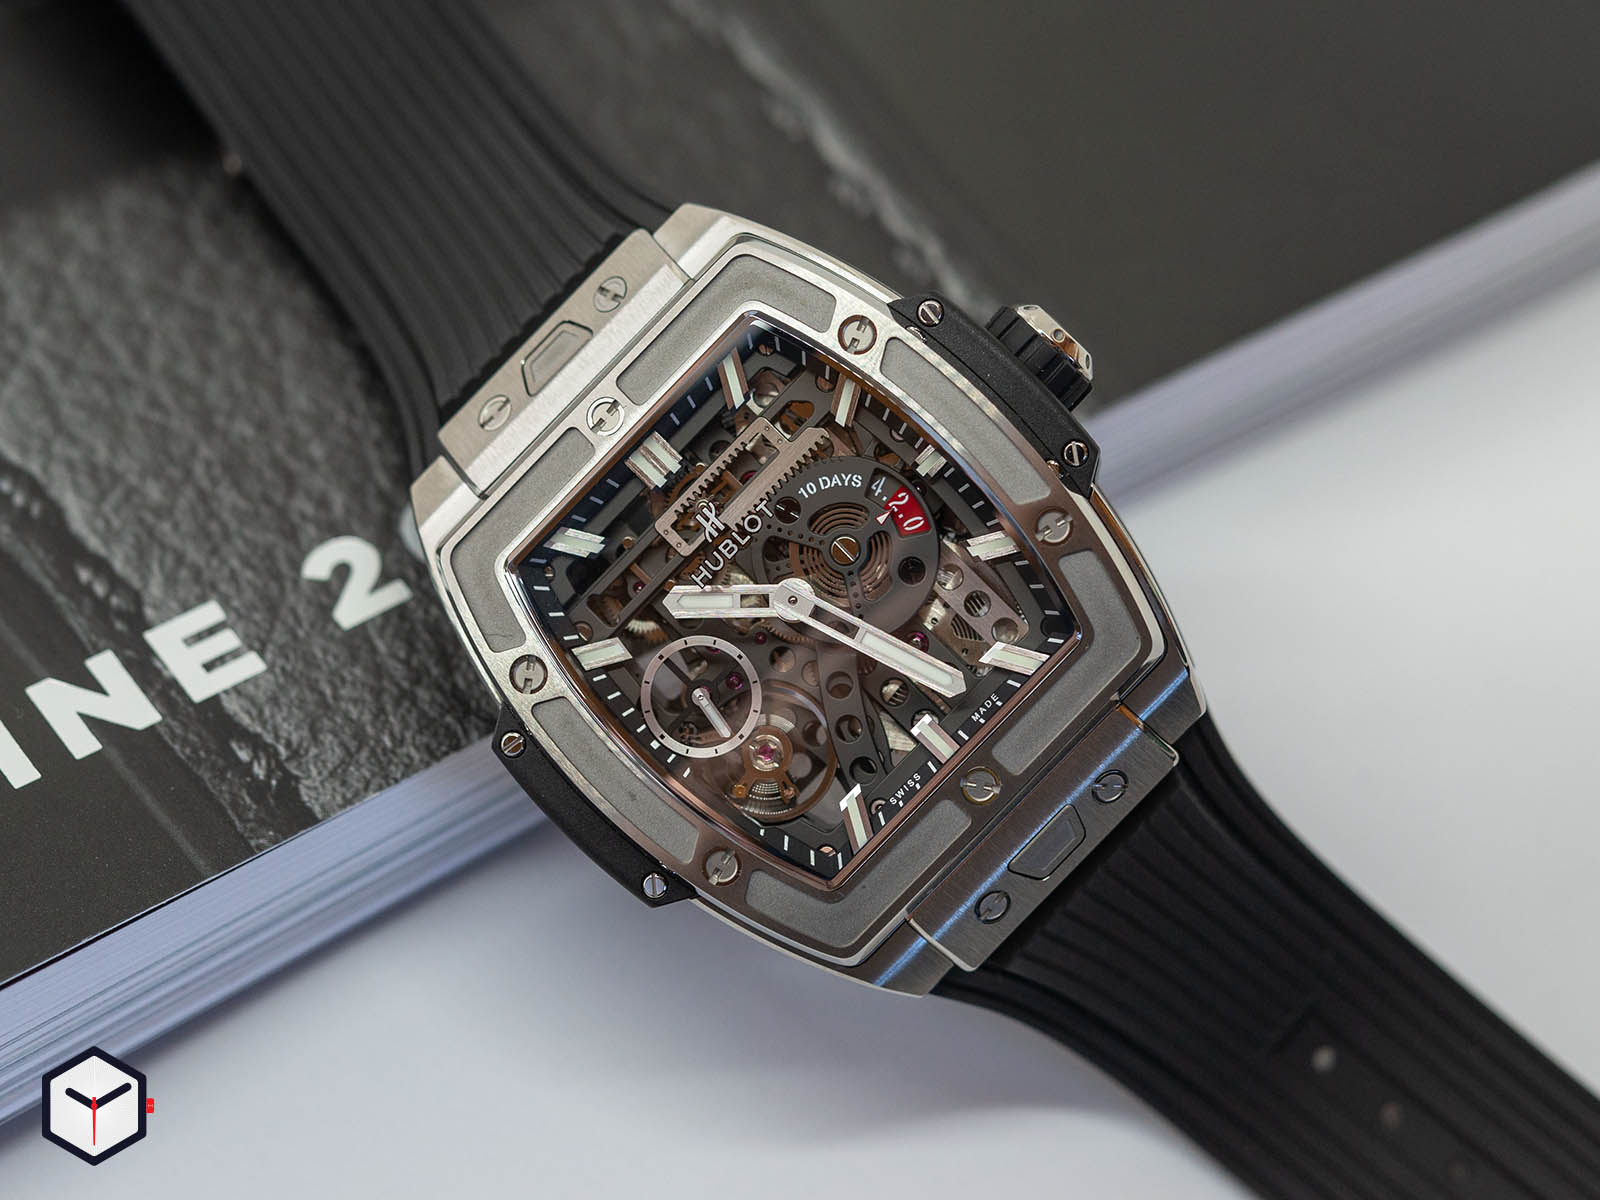 hublot-spirit-of-big-bang-meca-10-3.jpg